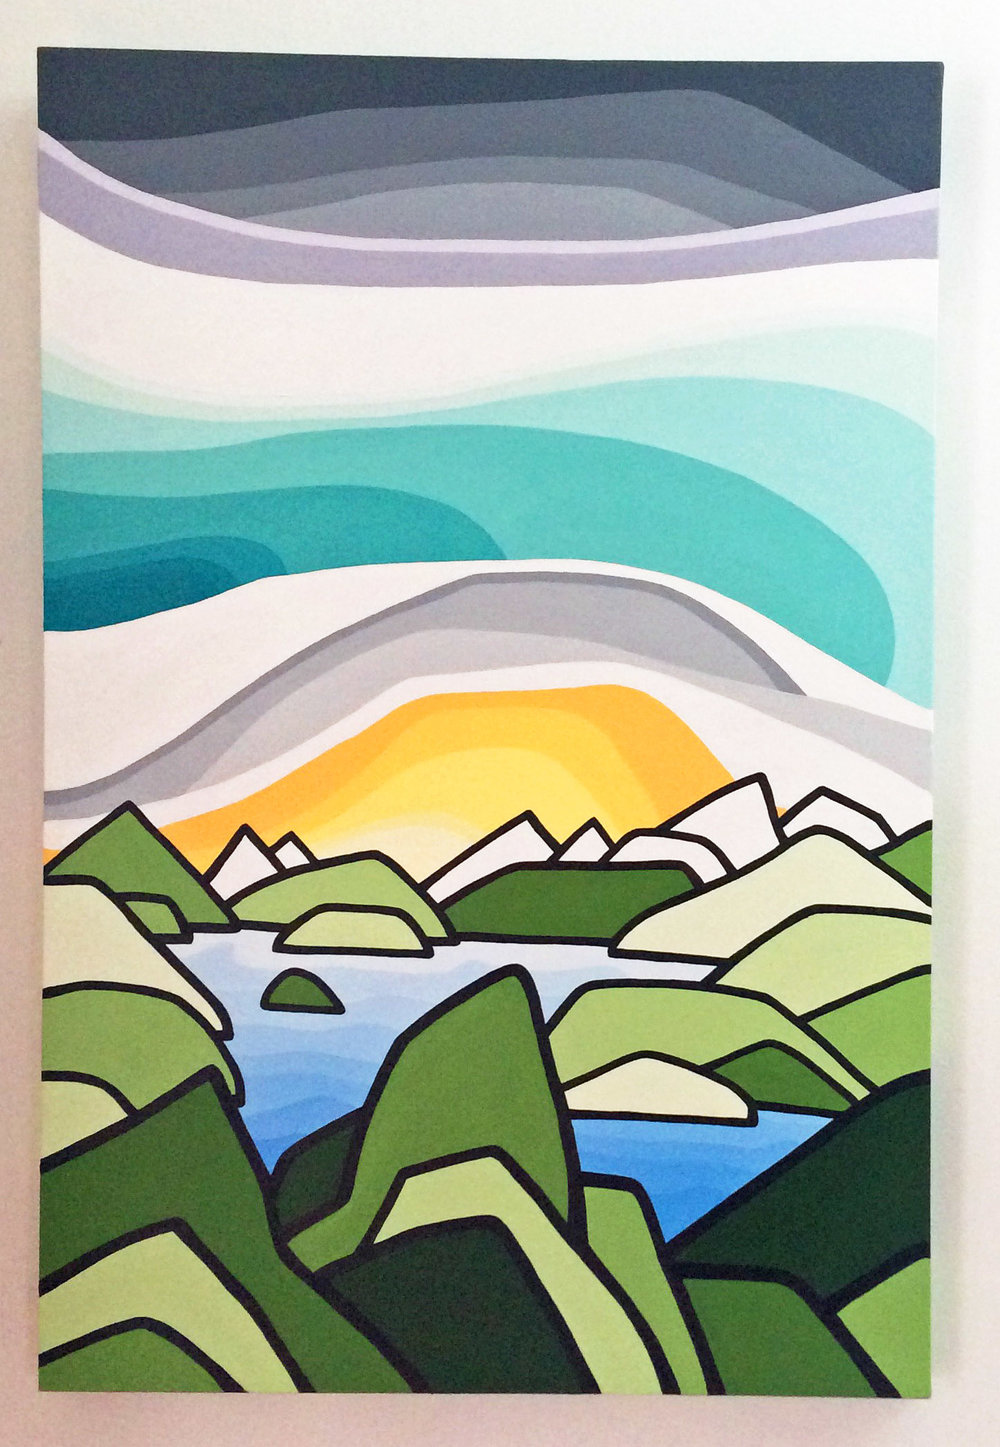 "Title: The Peaks   Size: 36"" x 24"" acrylic on canvas  Price: $600  SOLD!    Email: leannespanza@gmail.com"